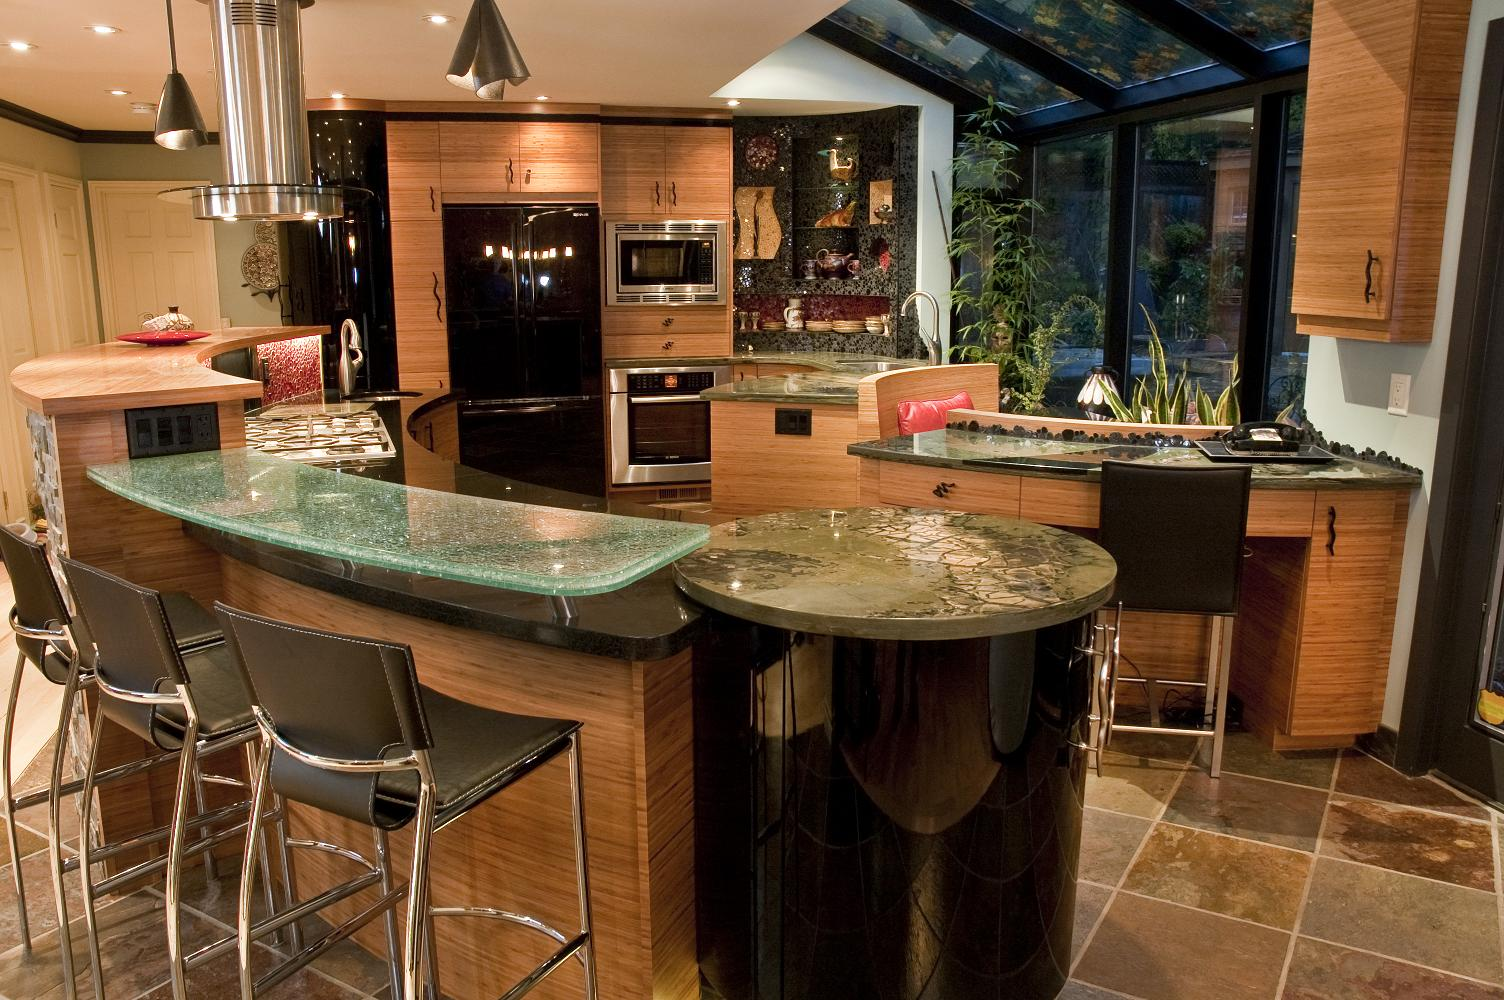 Eclectic Kitchen Design with curved island